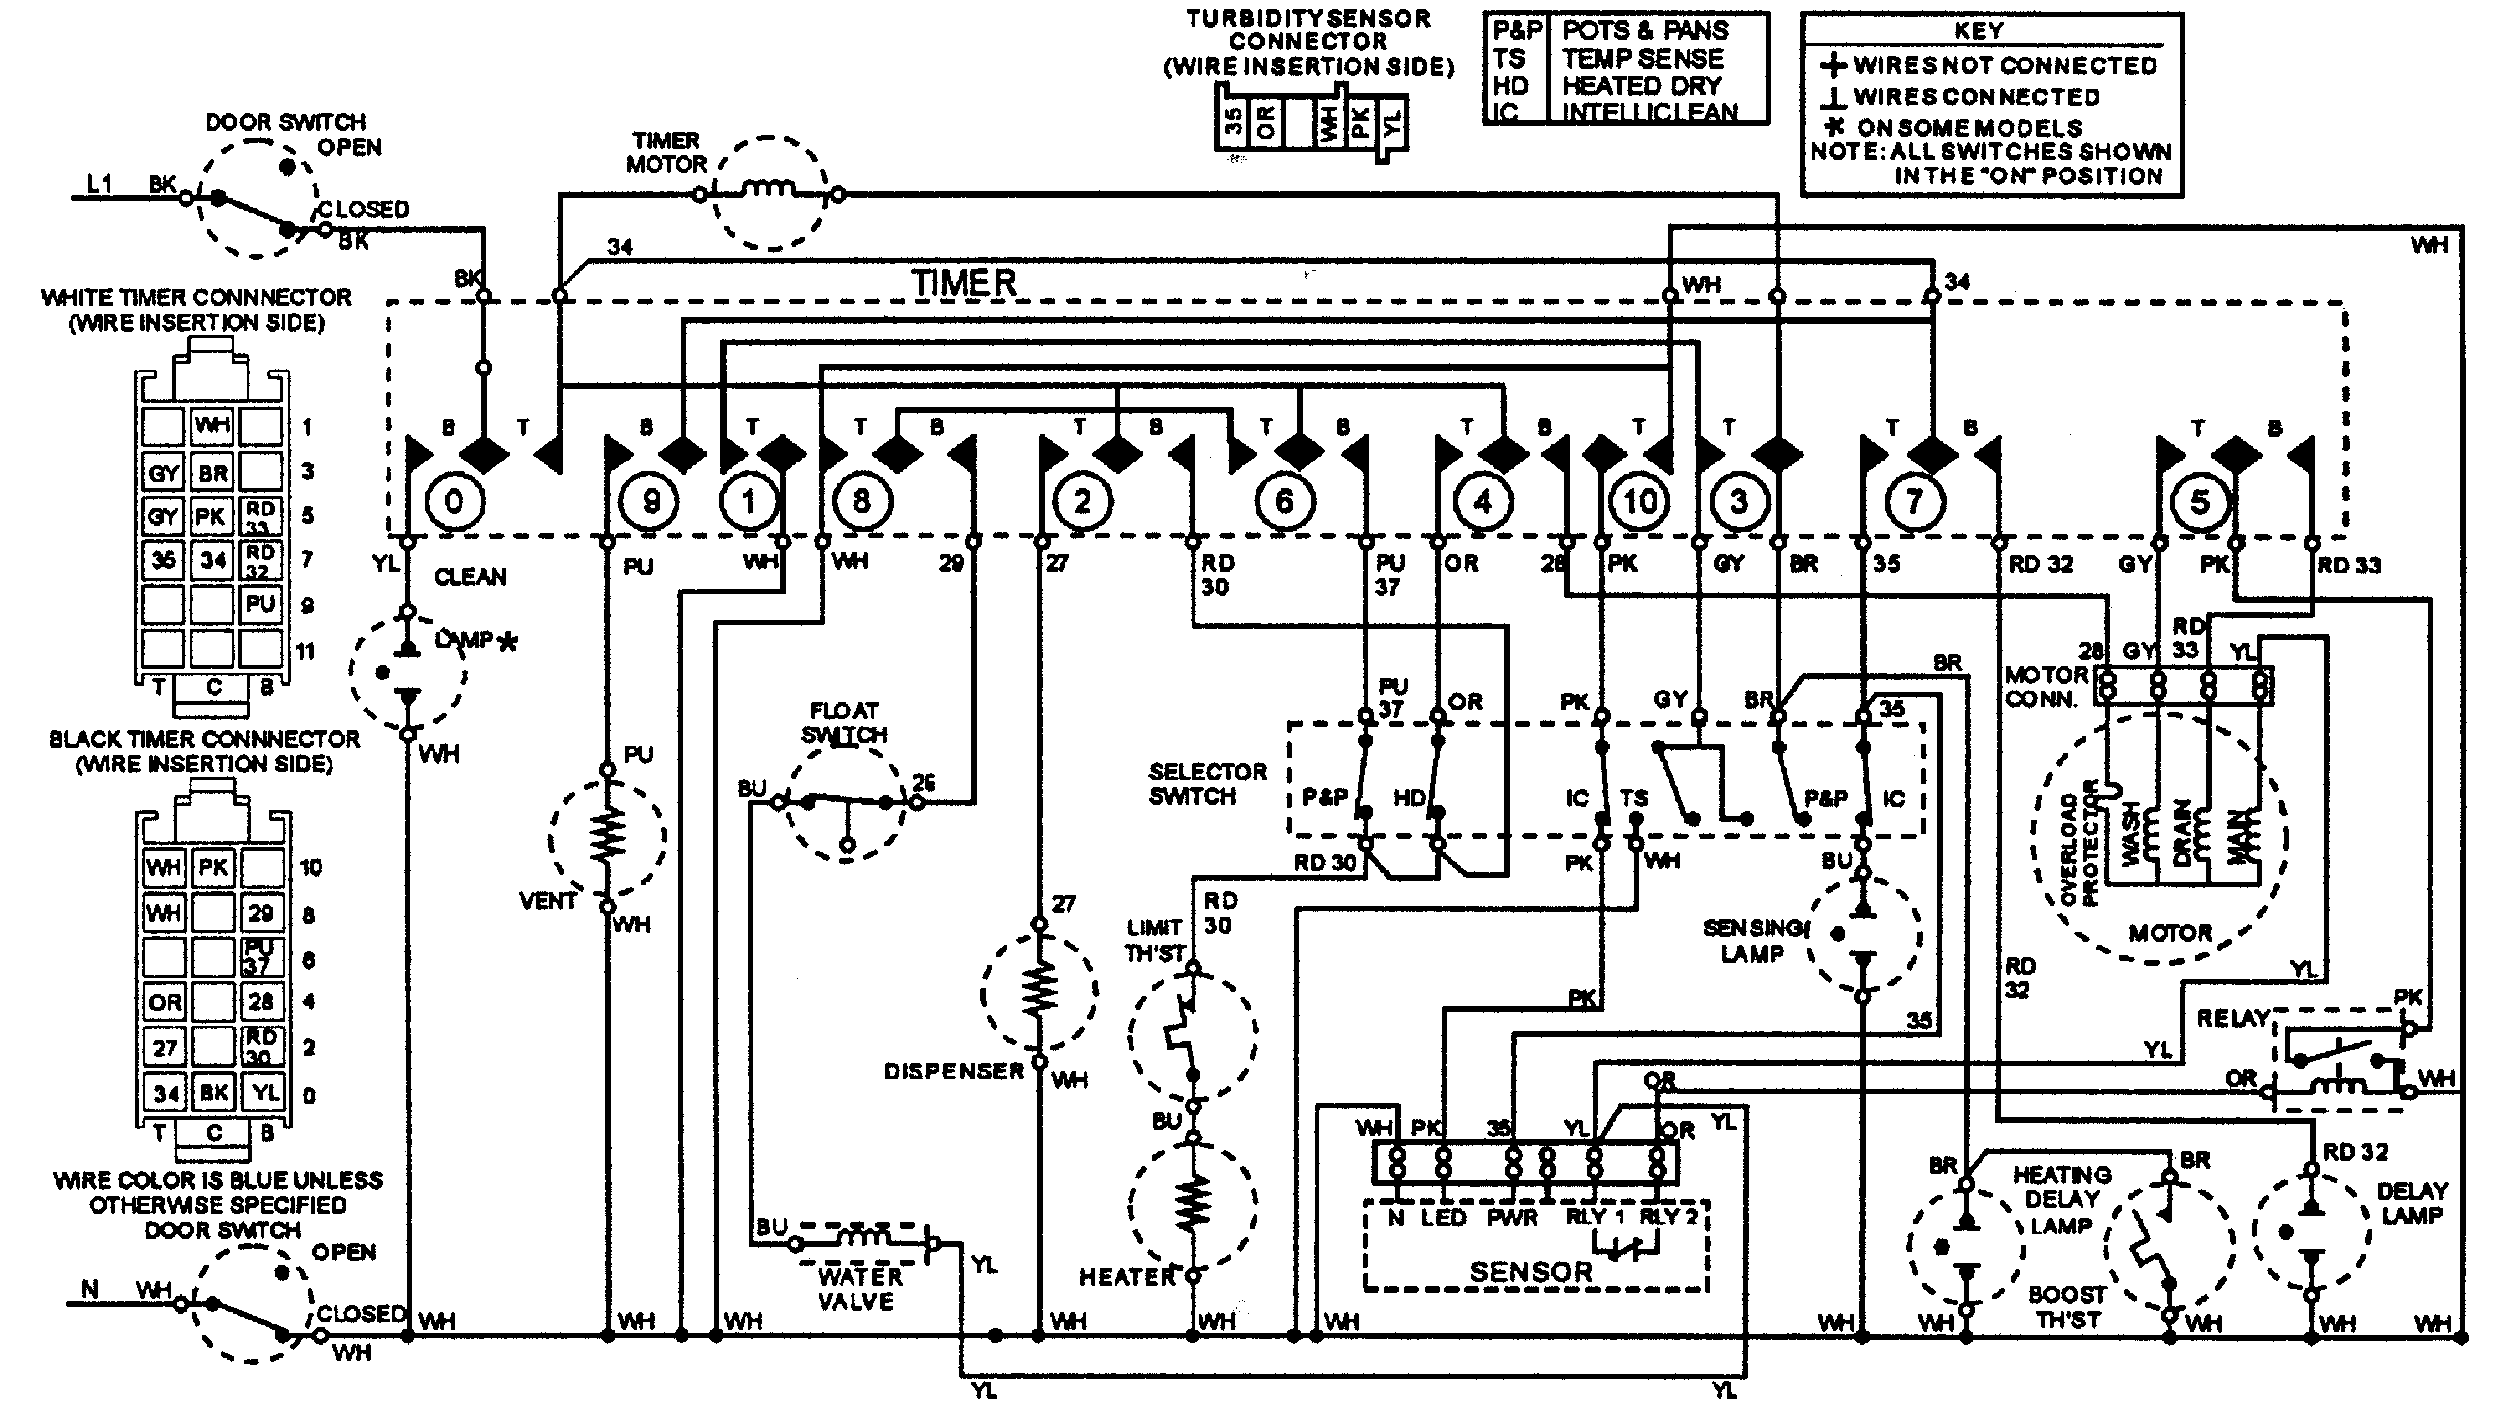 Whirlpool Wiring Schematics -Honda Pilot Engine Diagram Transmission |  Begeboy Wiring Diagram Source | Whirlpool Wiring Schematic |  | Begeboy Wiring Diagram Source